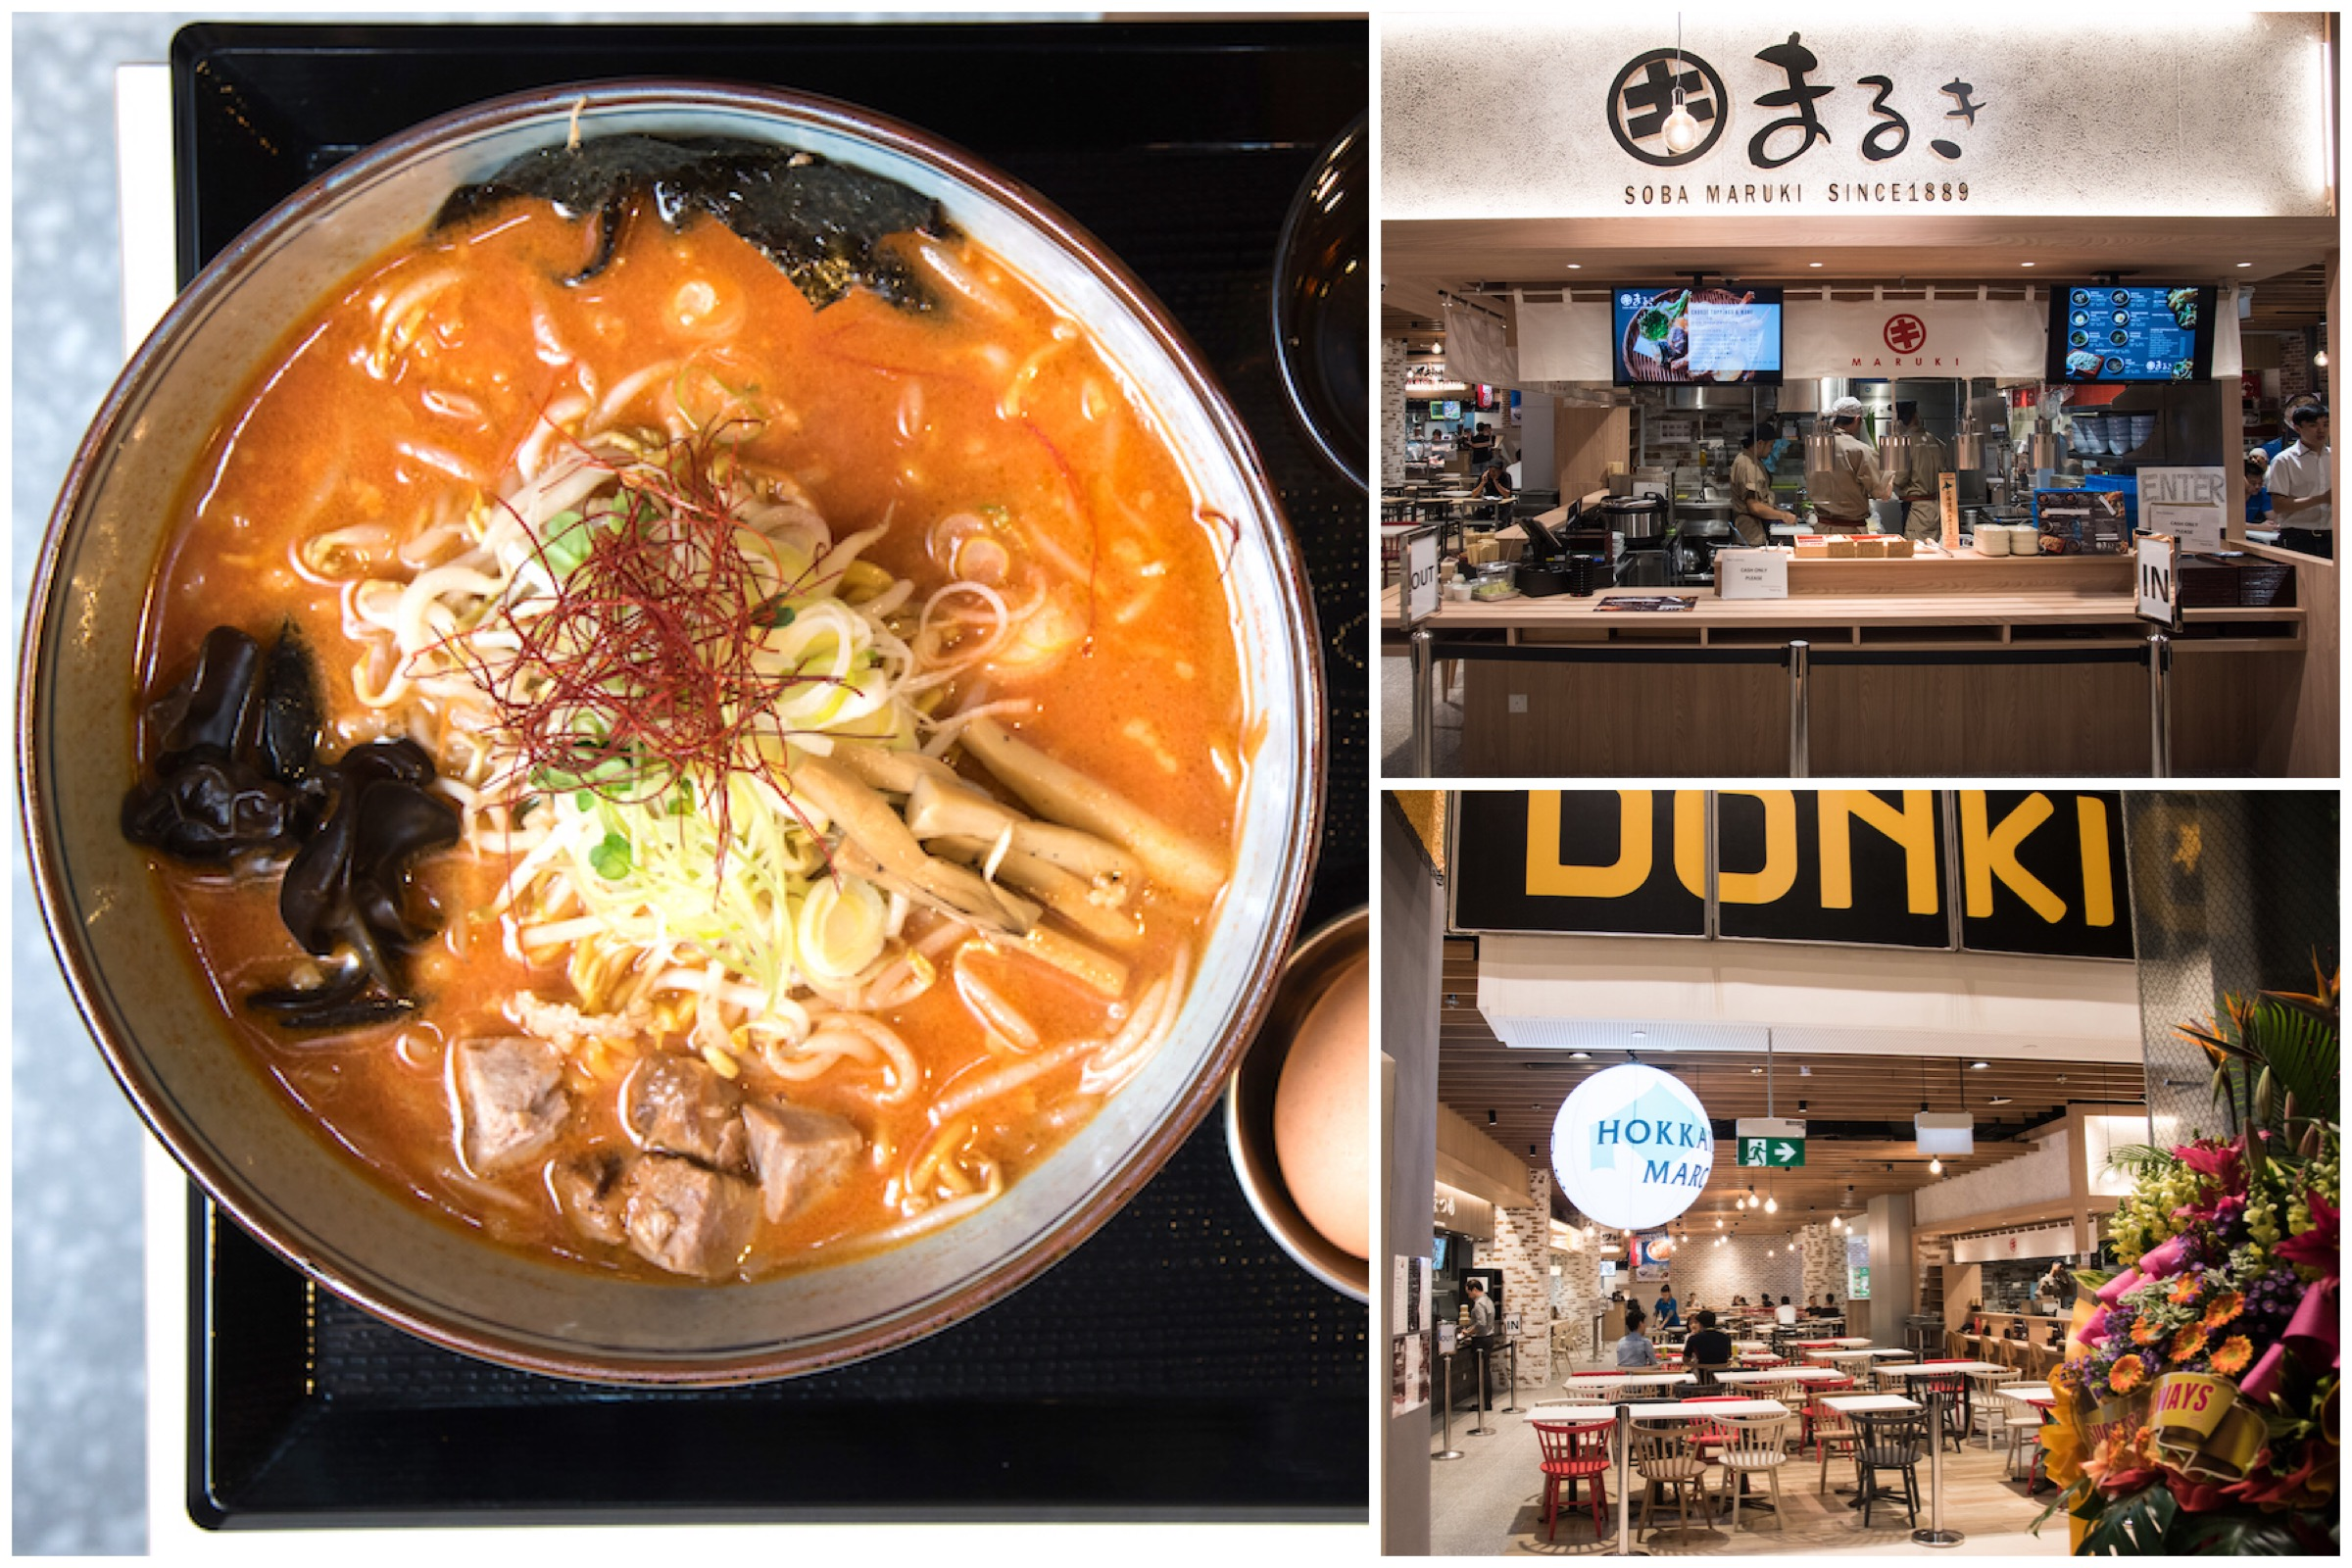 Hokkaido Marche - 8 Exciting Japanese Food Concepts From Hokkaido At Don Don Donki, Orchard Central